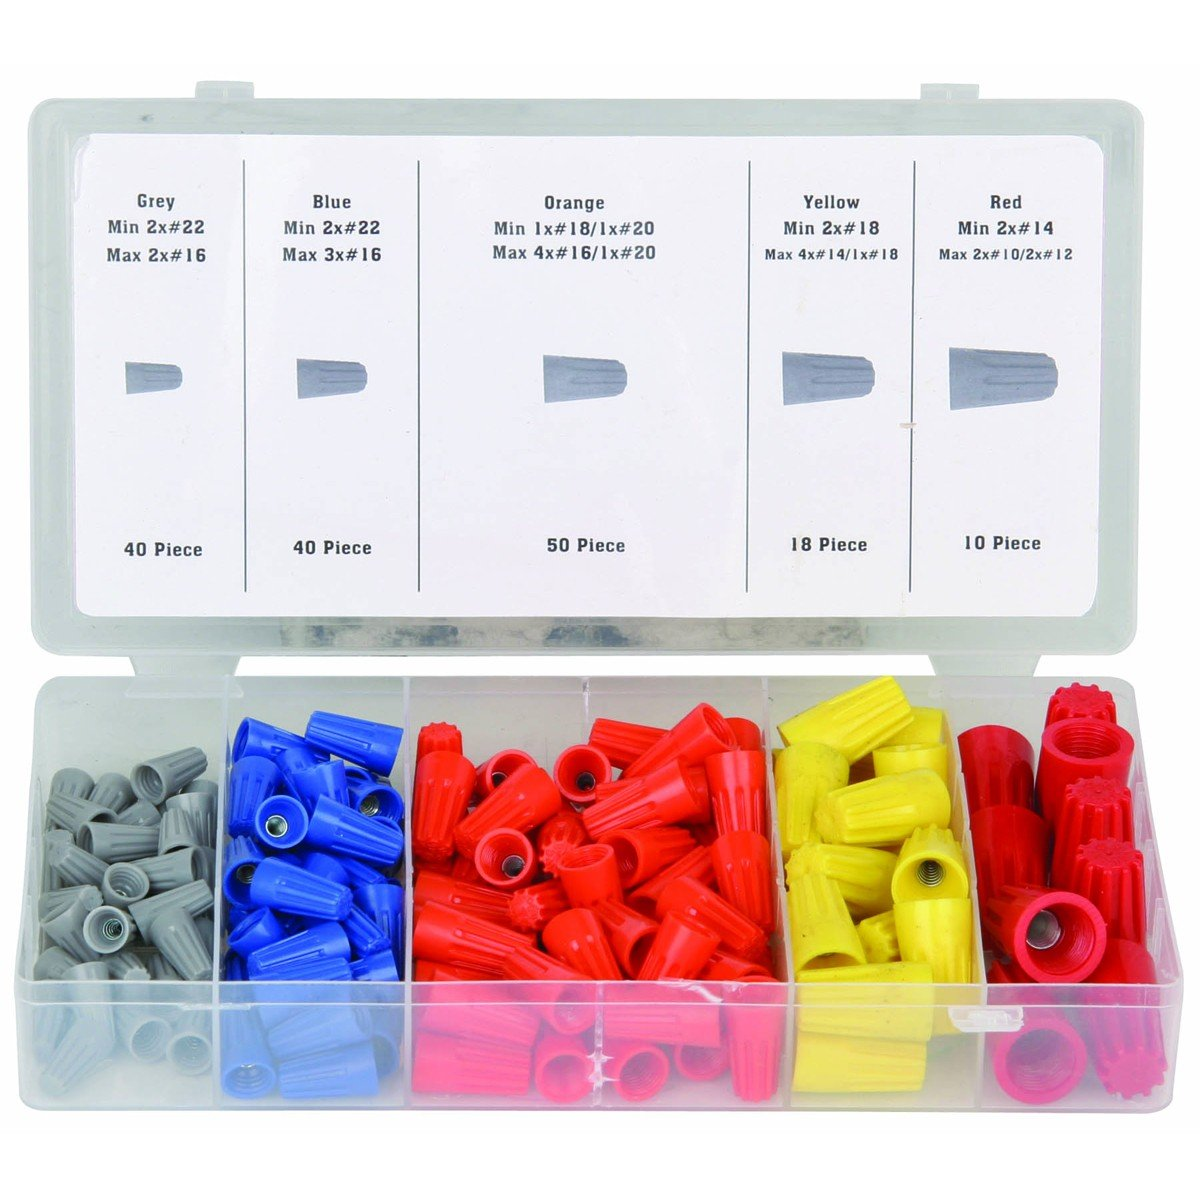 Amazon.com: 158 Piece Wire Connector Assortment: Home Improvement